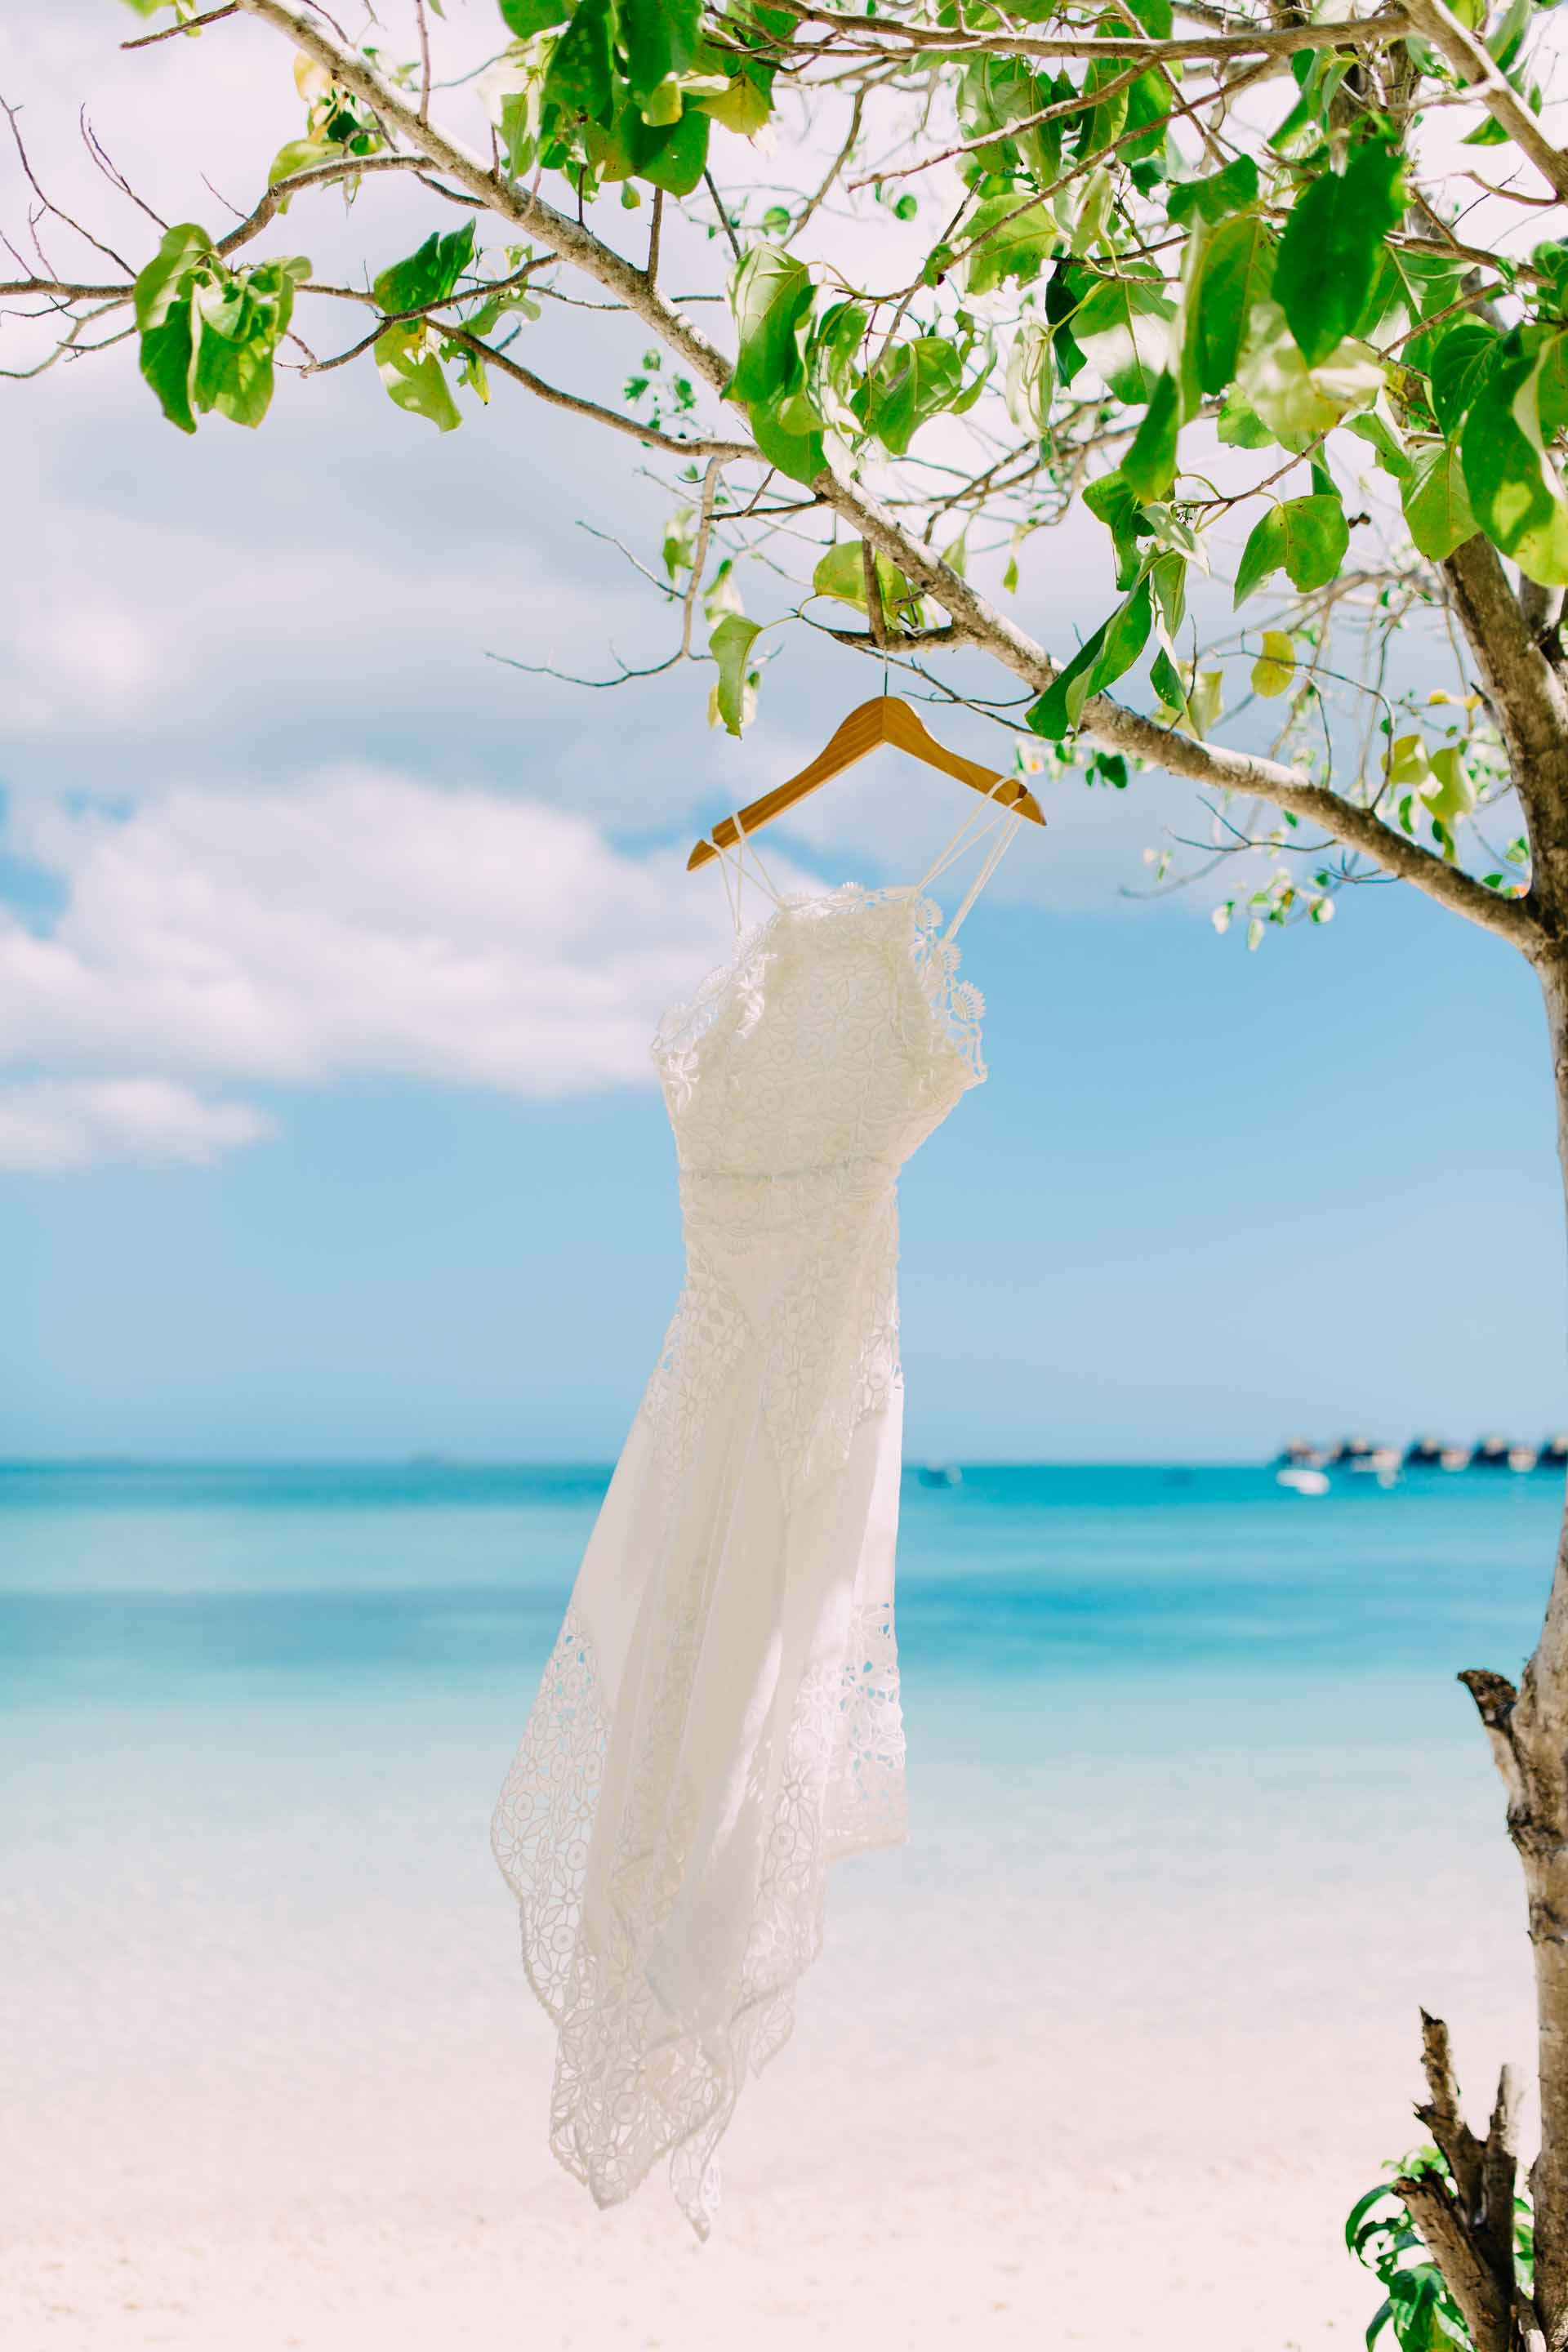 Brides dress hanging from a tree on the white sandy beach